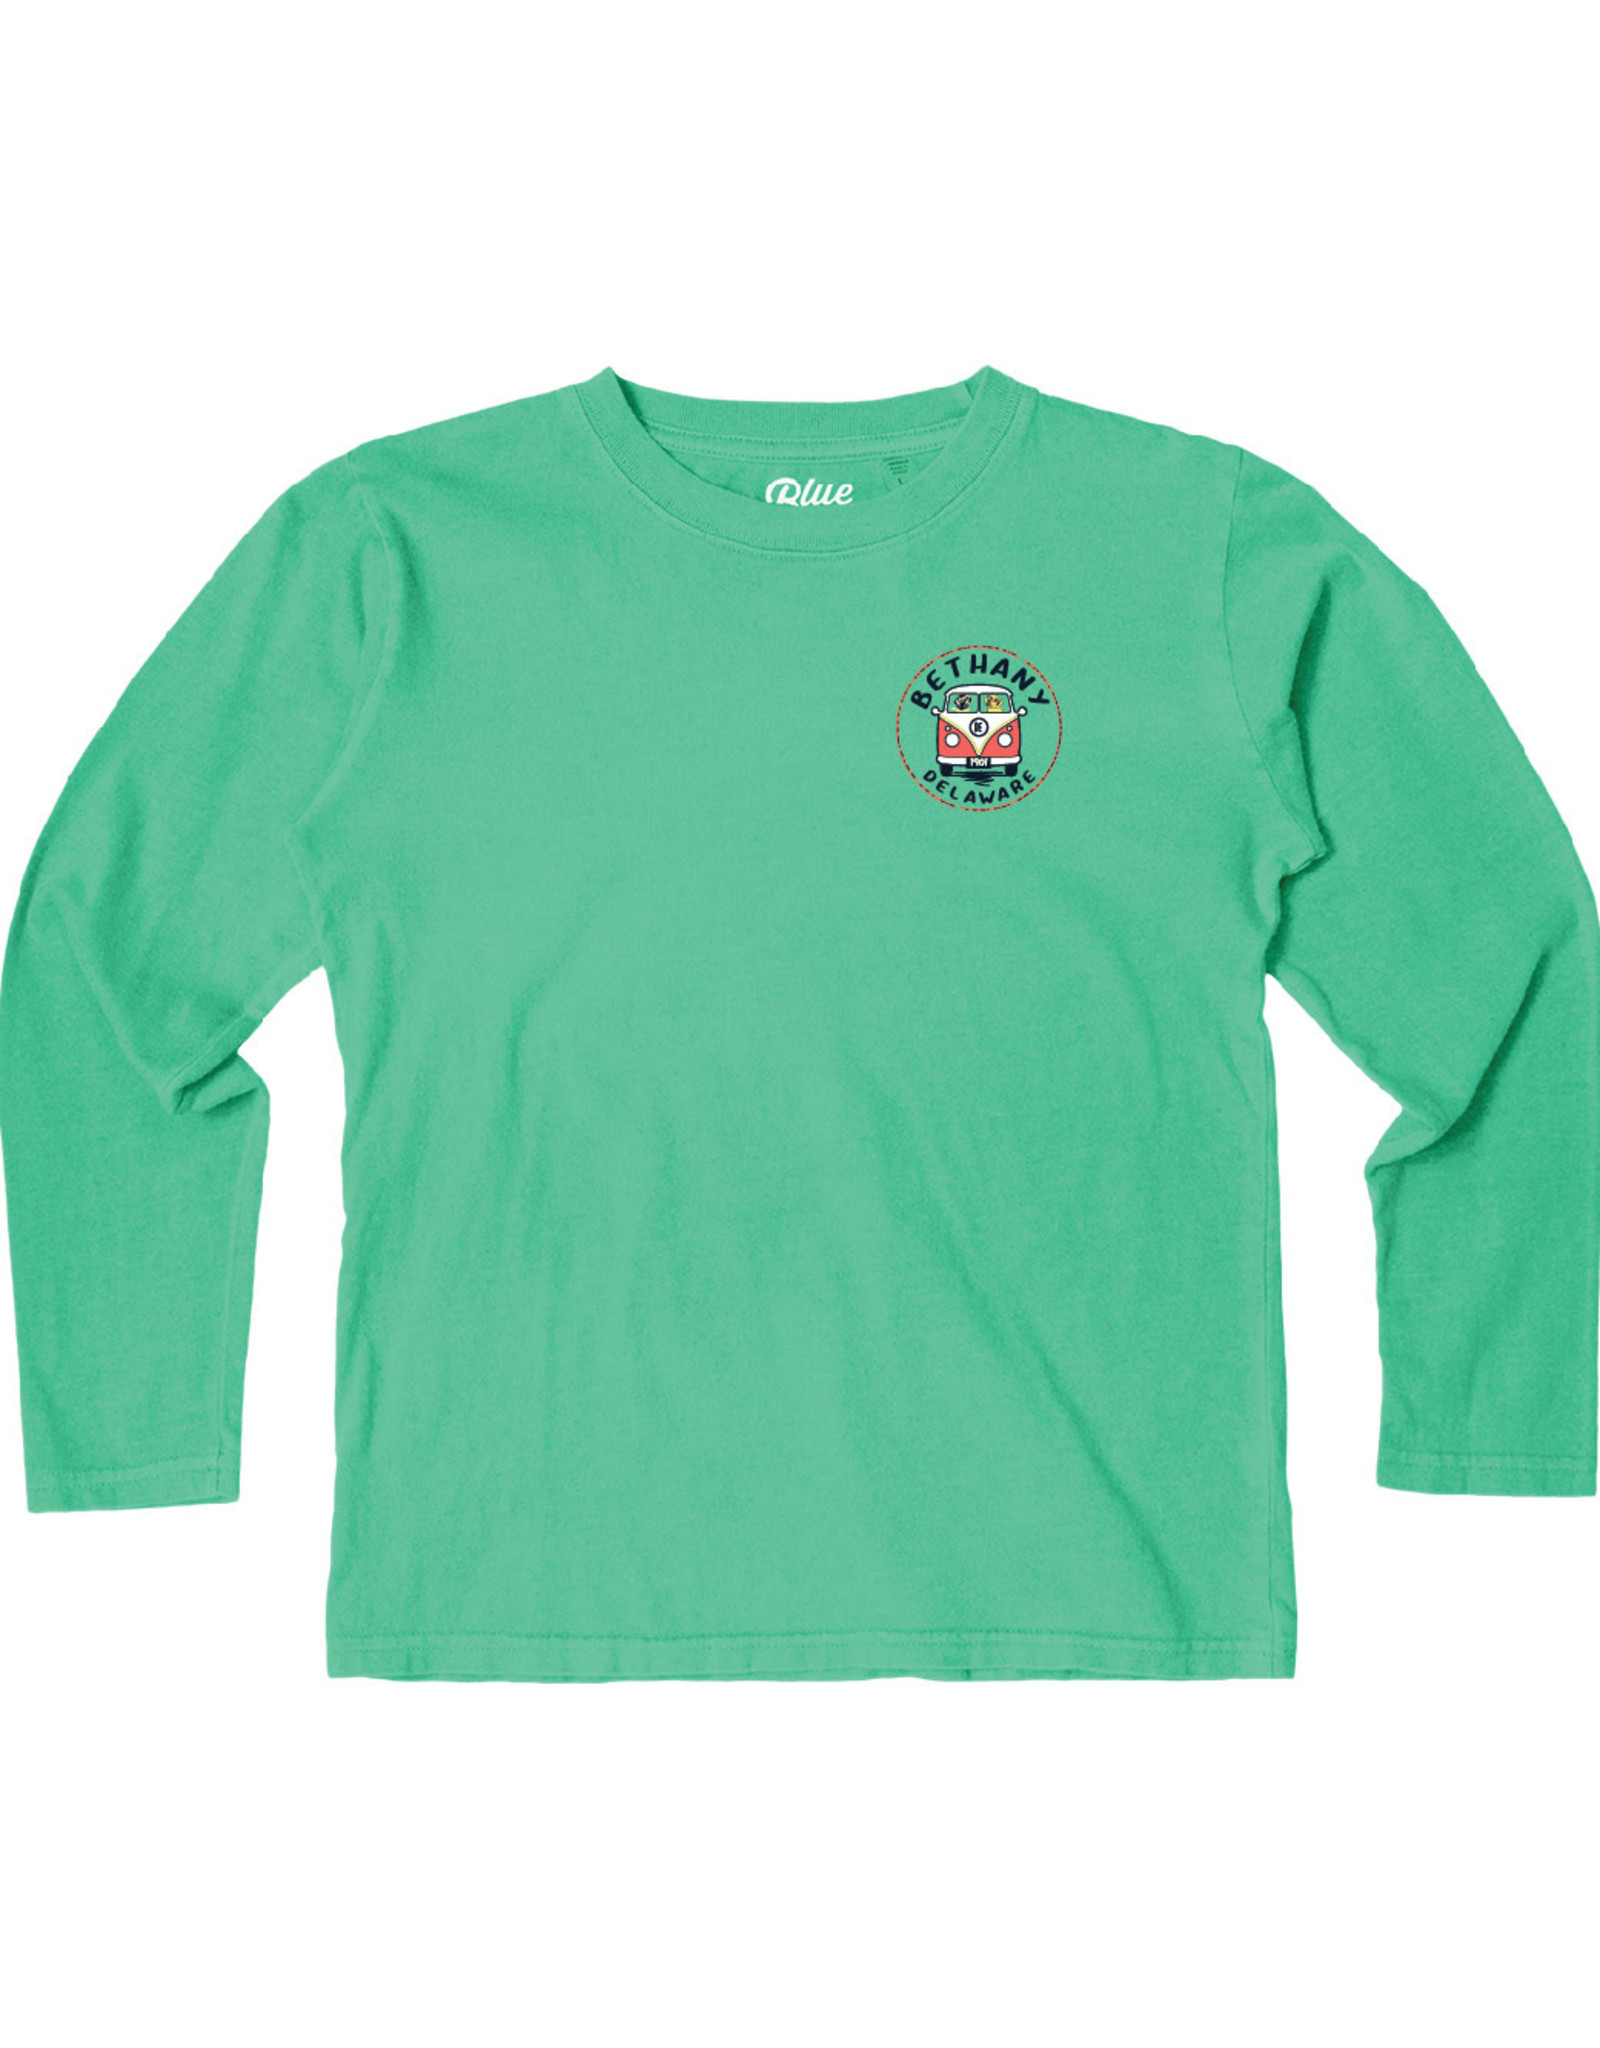 BLUE 84 BETHANY CONCURRENCE BUS/DOGS YOUTH LS TEE